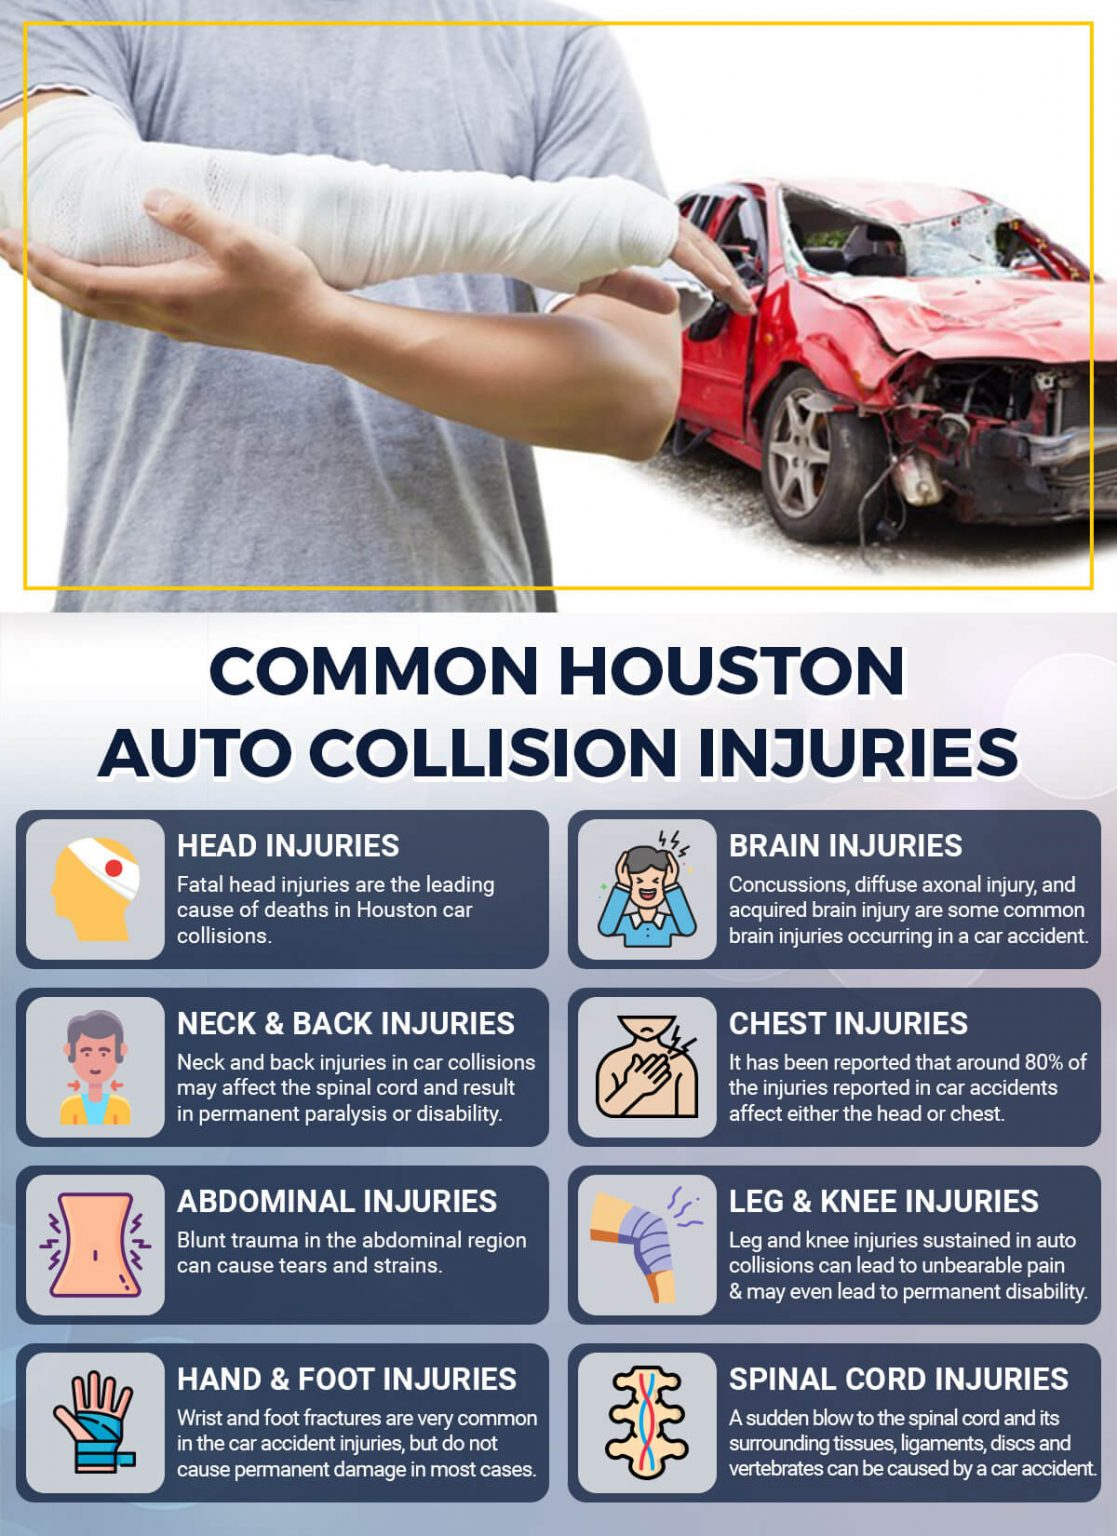 here are some of the injuries you can have after a car accident and can claim compensation against with the help of Pusch & Nguyen lawyers